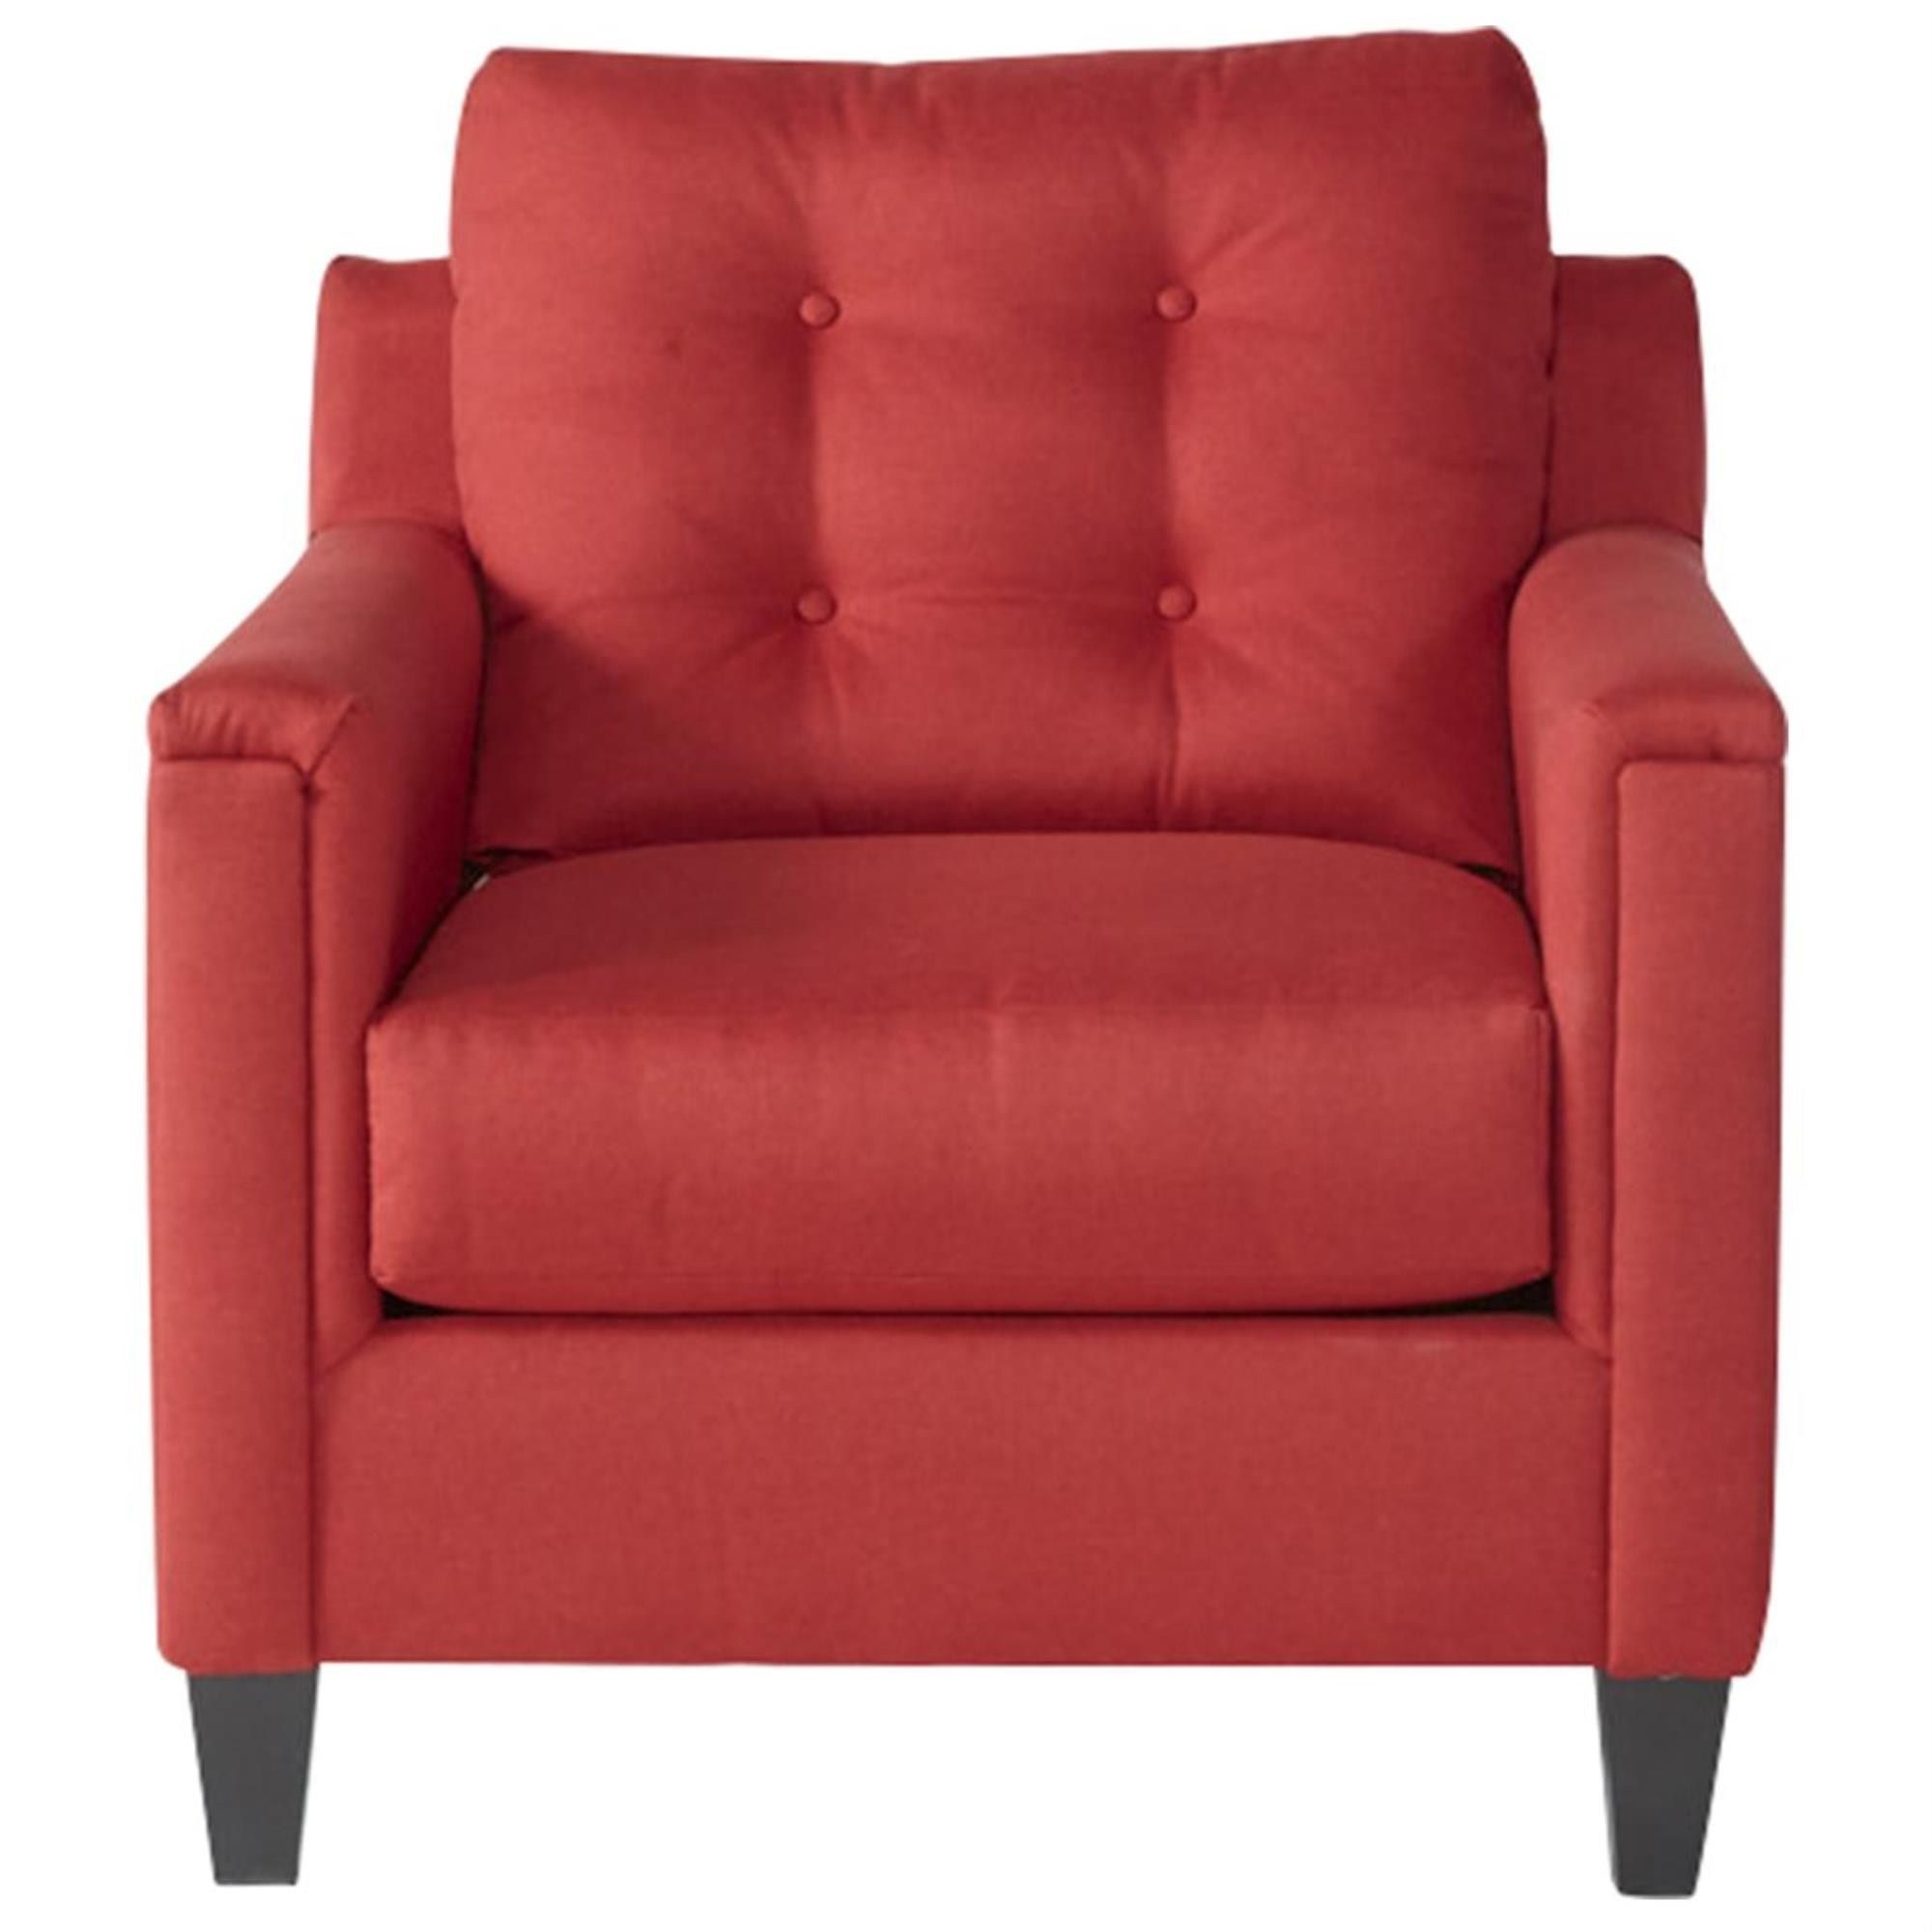 Hughes Furniture Standard Chair In Jitterbug Red Nebraska Furniture Mart In 2020 Armchair Furniture Chair